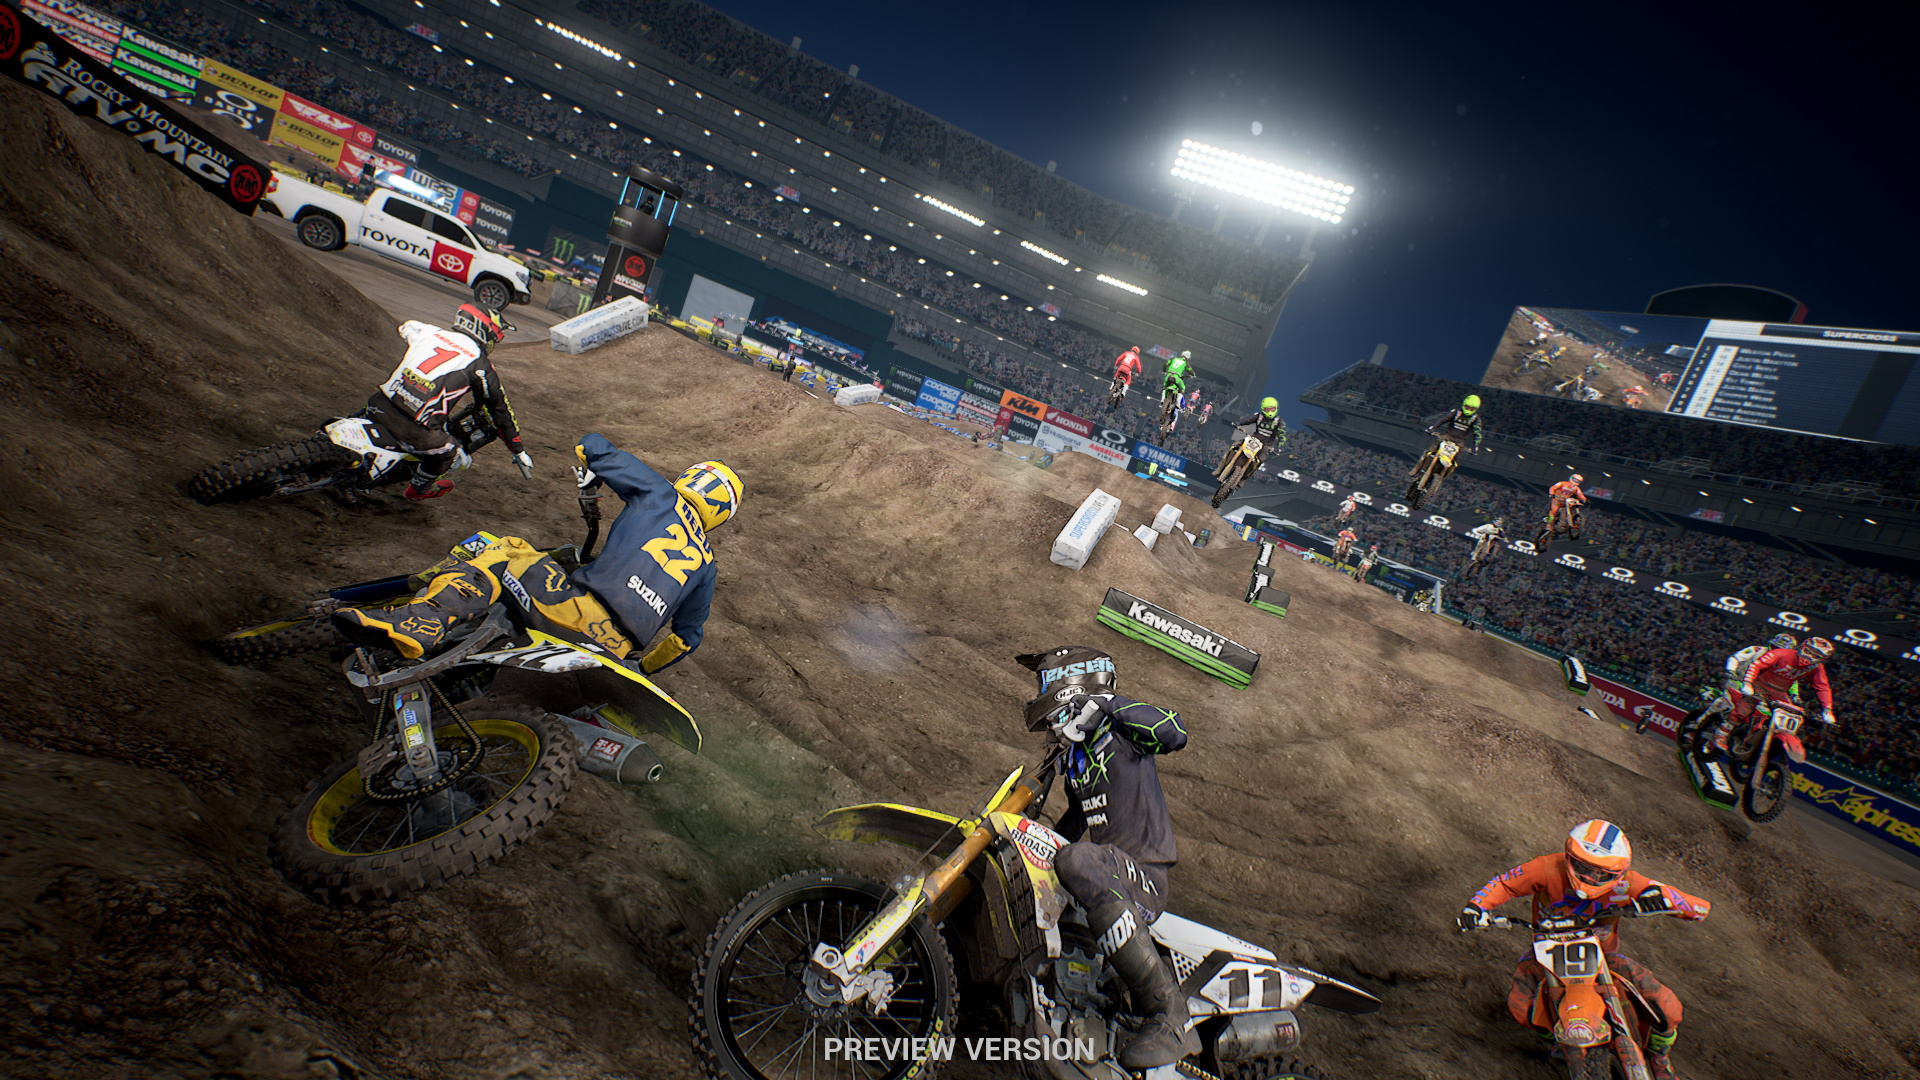 A screenshot from the preview build of Monster Energy Supercross 3